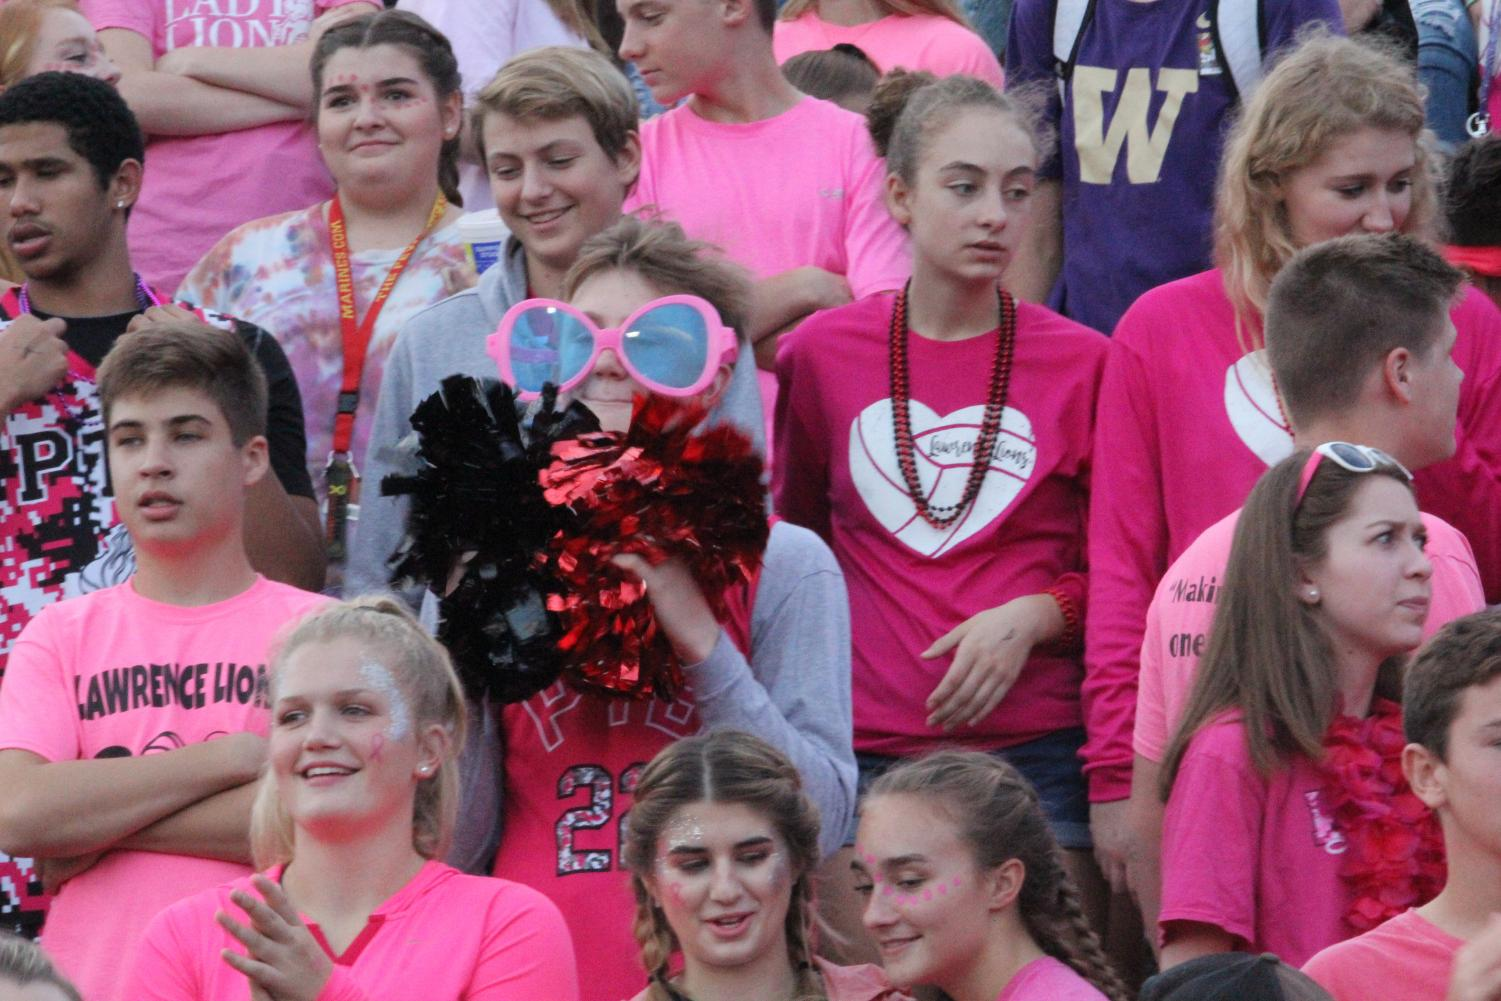 """PRETTY IN PINK — Sophomore Melanie Meyer is spotted in a sea of pink as Lawrence High celebrates the annual pink-out game. """"I enjoyed the game,"""" Meyer said. """"Football is a good time for people to come together and just have fun."""""""